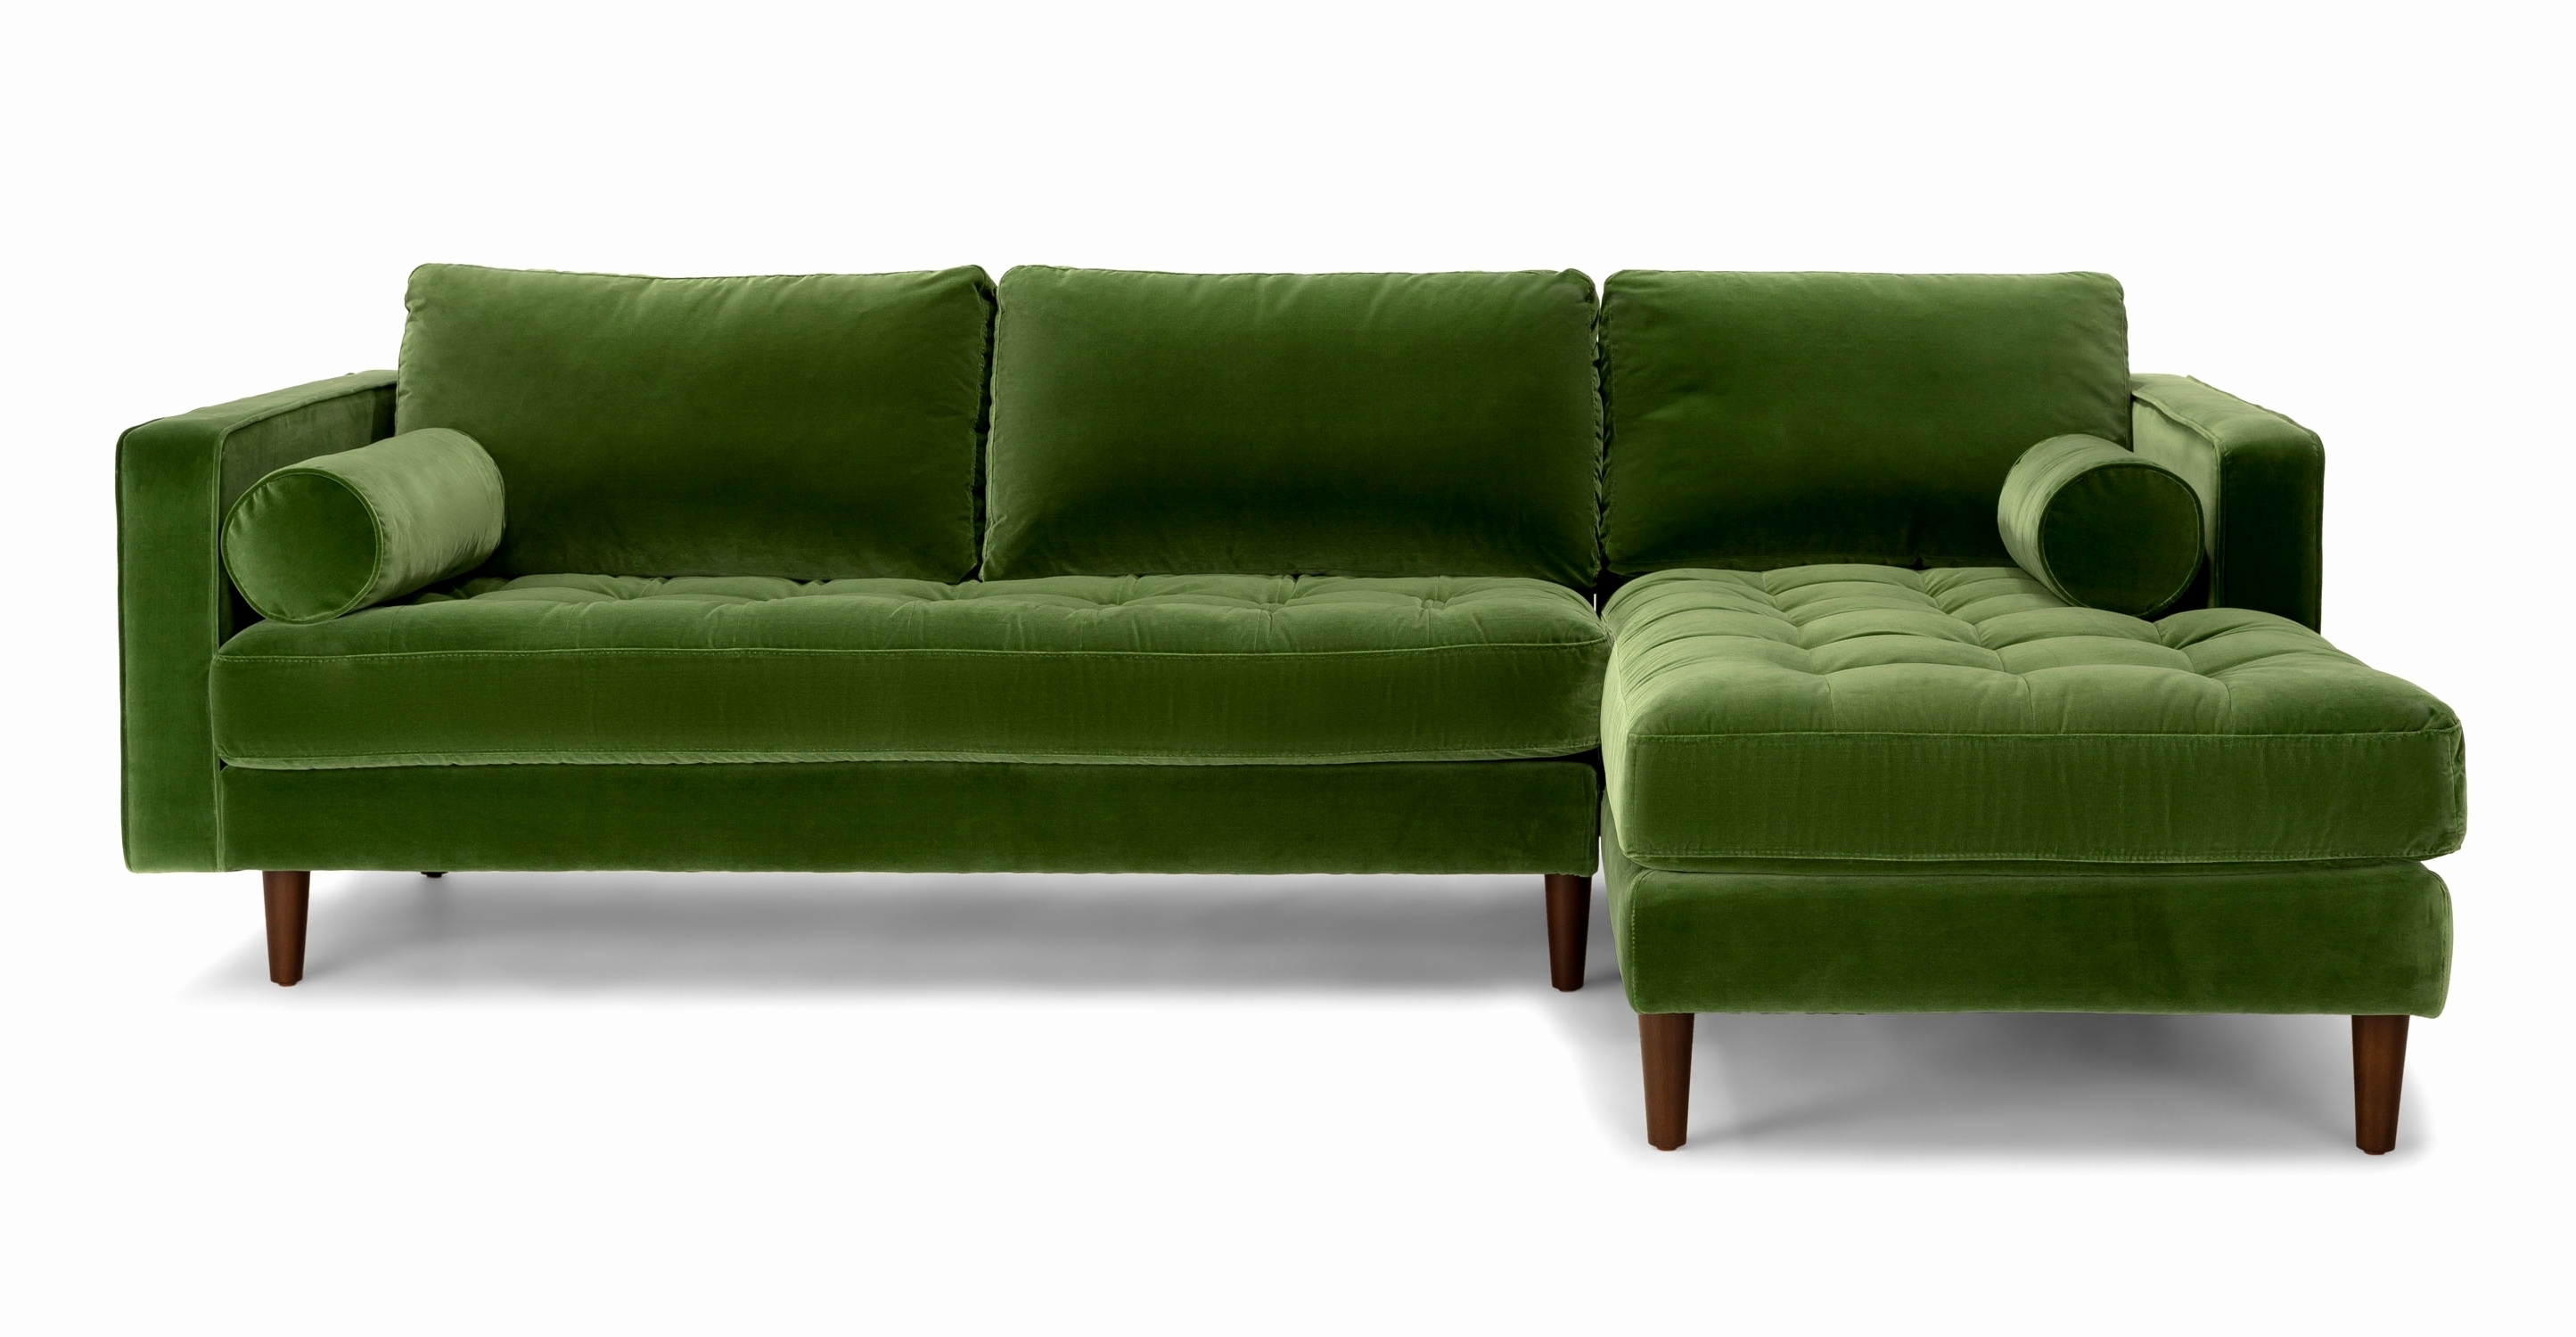 Most Popular Green Sectional Sofas With Chaise With Regard To New 5 Piece Sectional Sofa With Chaise 2018 – Couches Ideas (View 10 of 15)